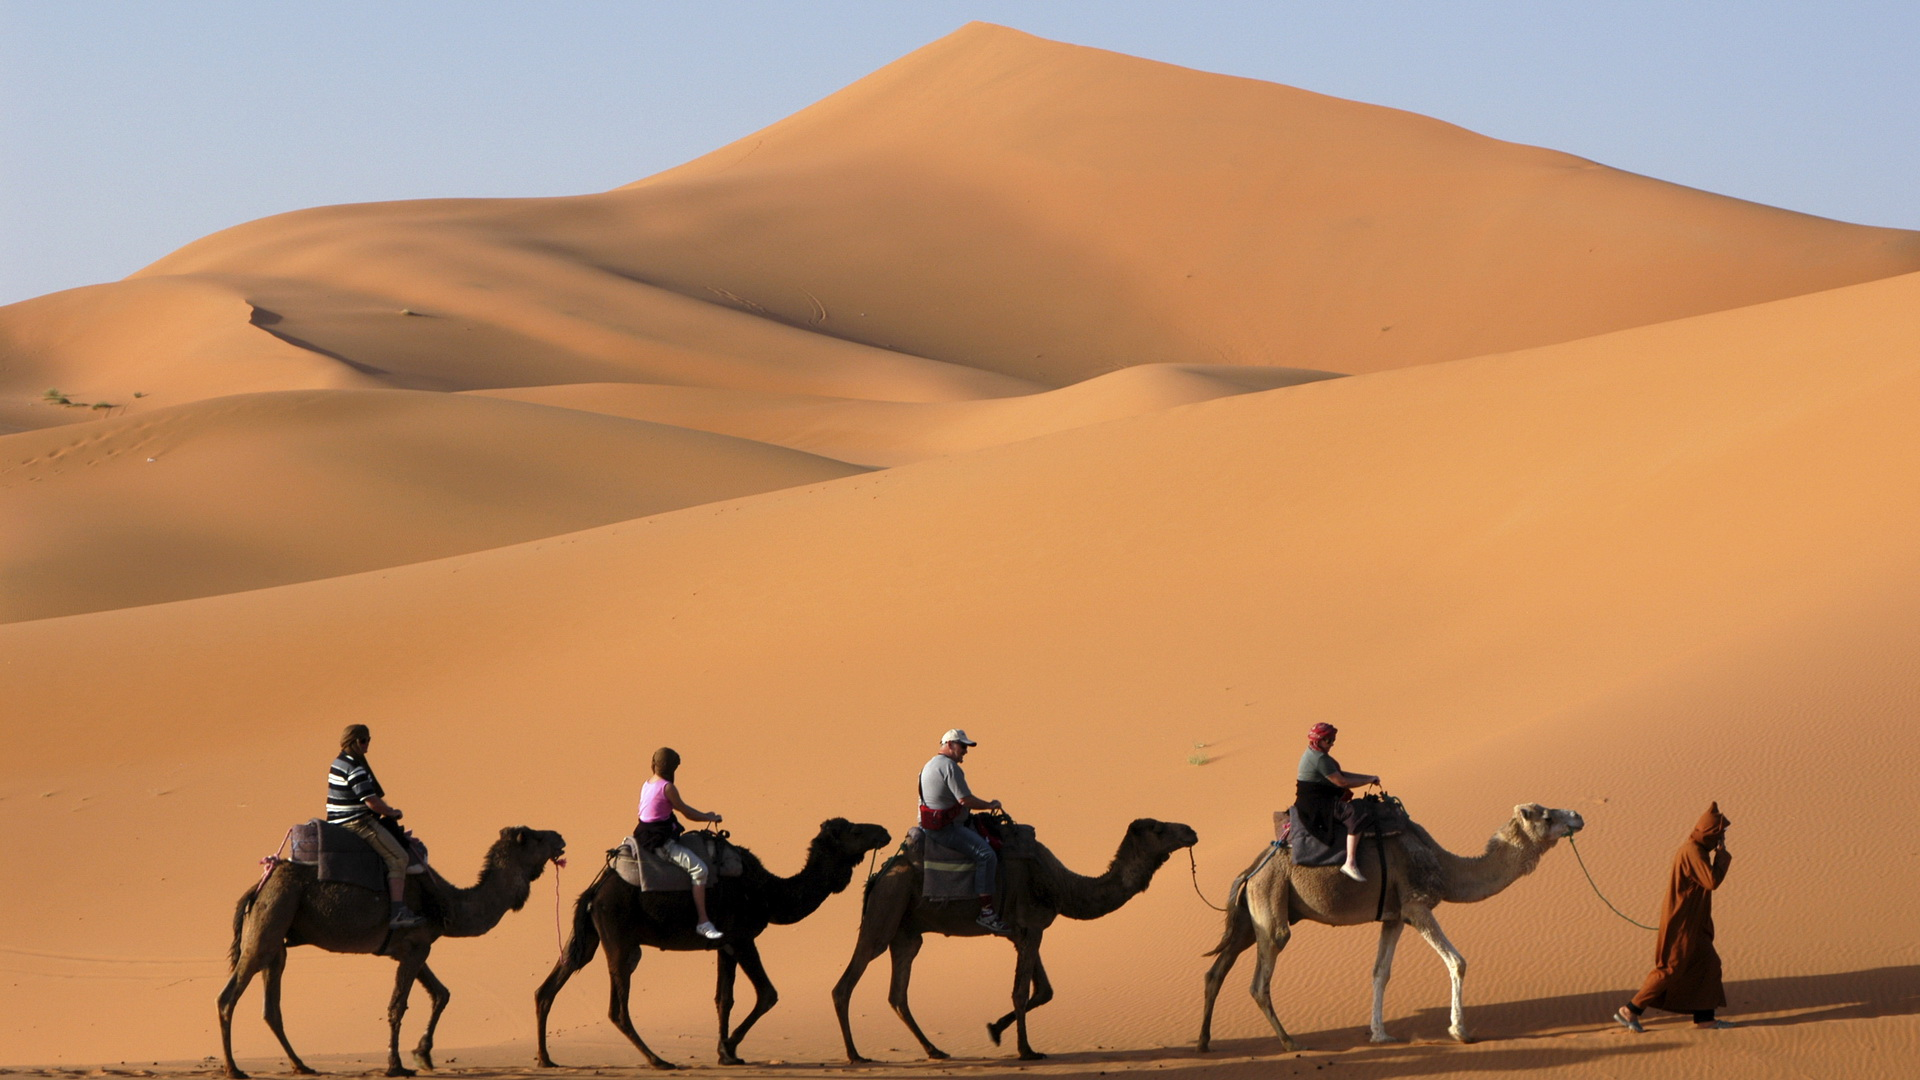 pathfinders treks - fes to the sahara desert tour